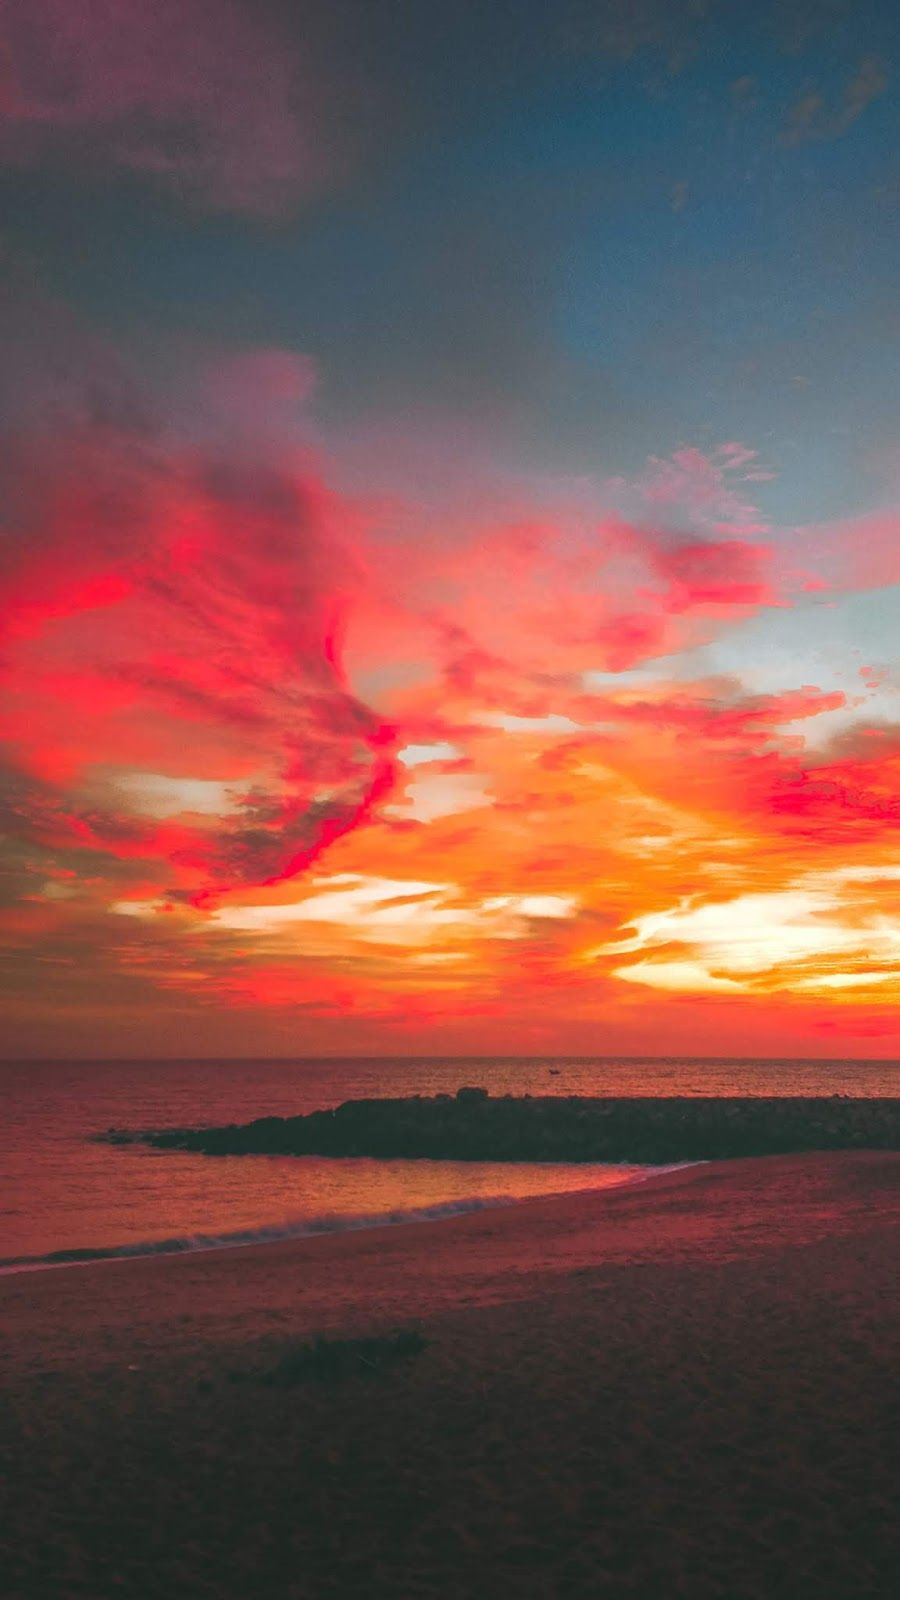 Sky In The Sunset Wallpaper Iphone Android Background Followme Sunset Wallpaper Beautiful Wallpapers Backgrounds Night Sky Wallpaper Hd wallpaper sunset sky red bridge